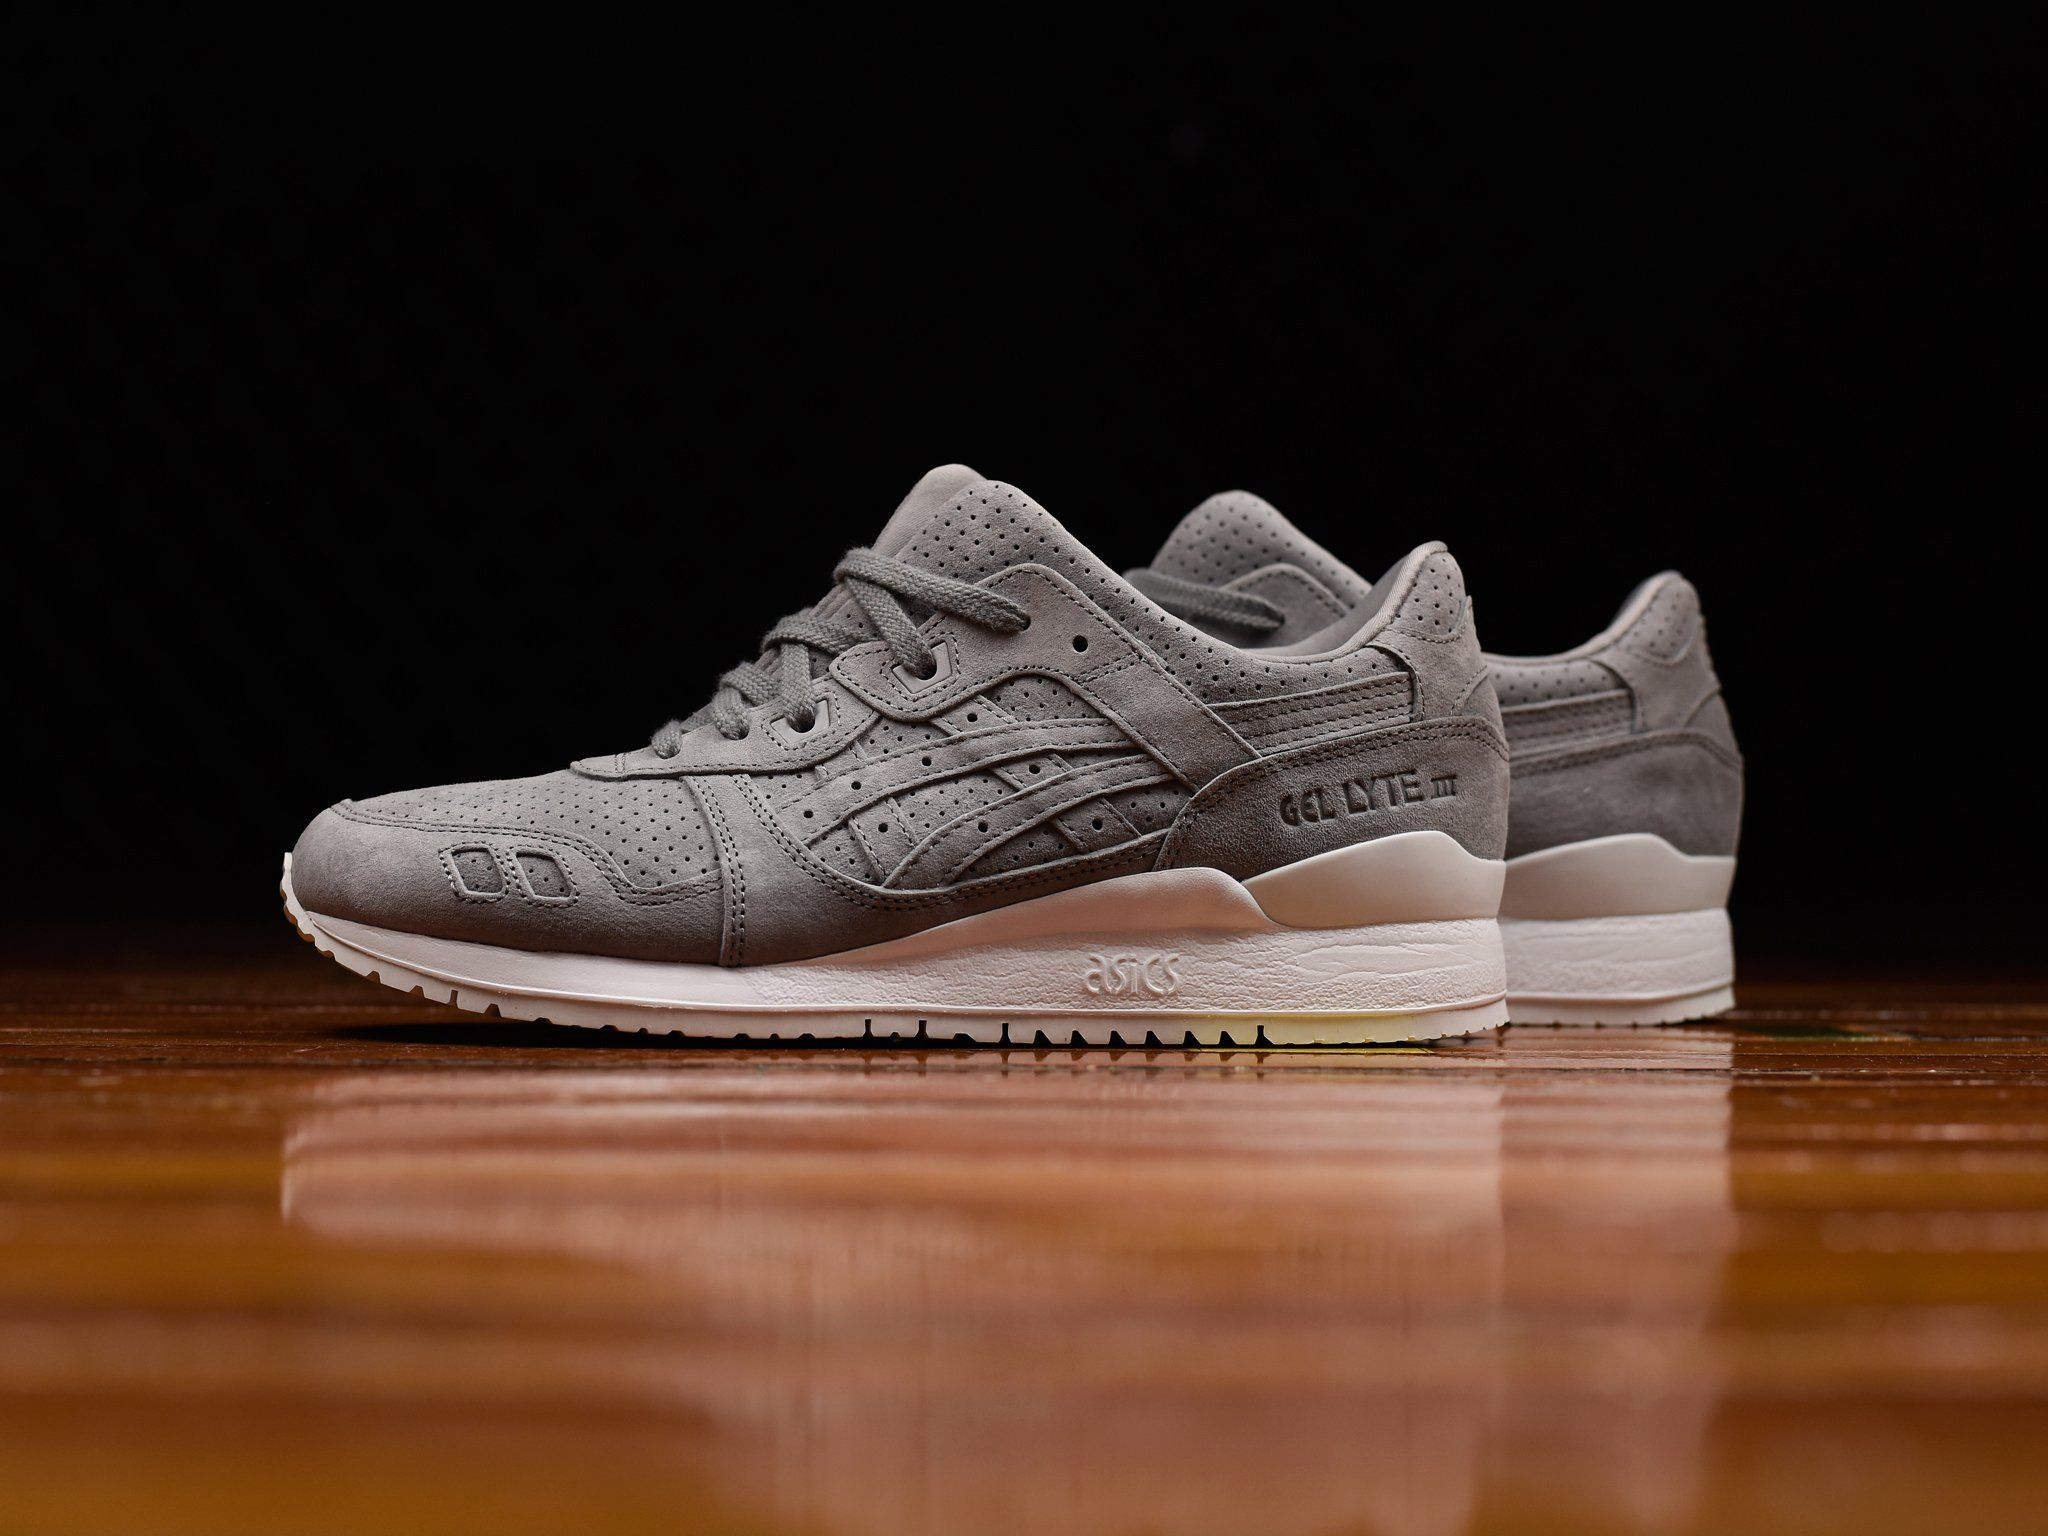 the best attitude 499cb 42782 Men's Asics Gel-Lyte III 'Aluminum' [HL7X2-9696] | Asics ...